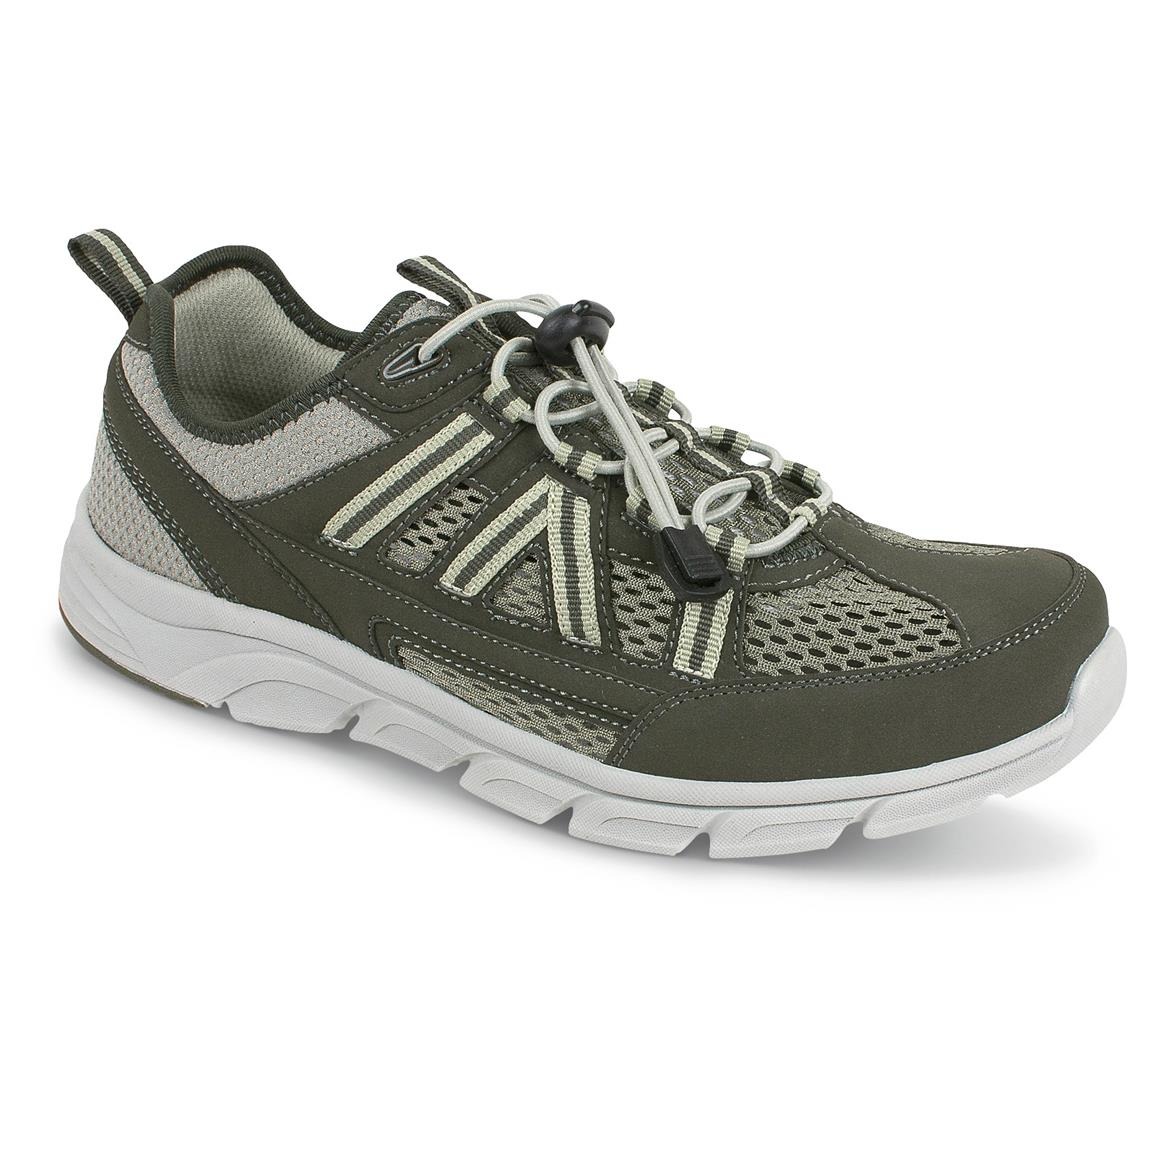 Rugged Shark Men's Captiva Sport-Athletic Shoes, Olive